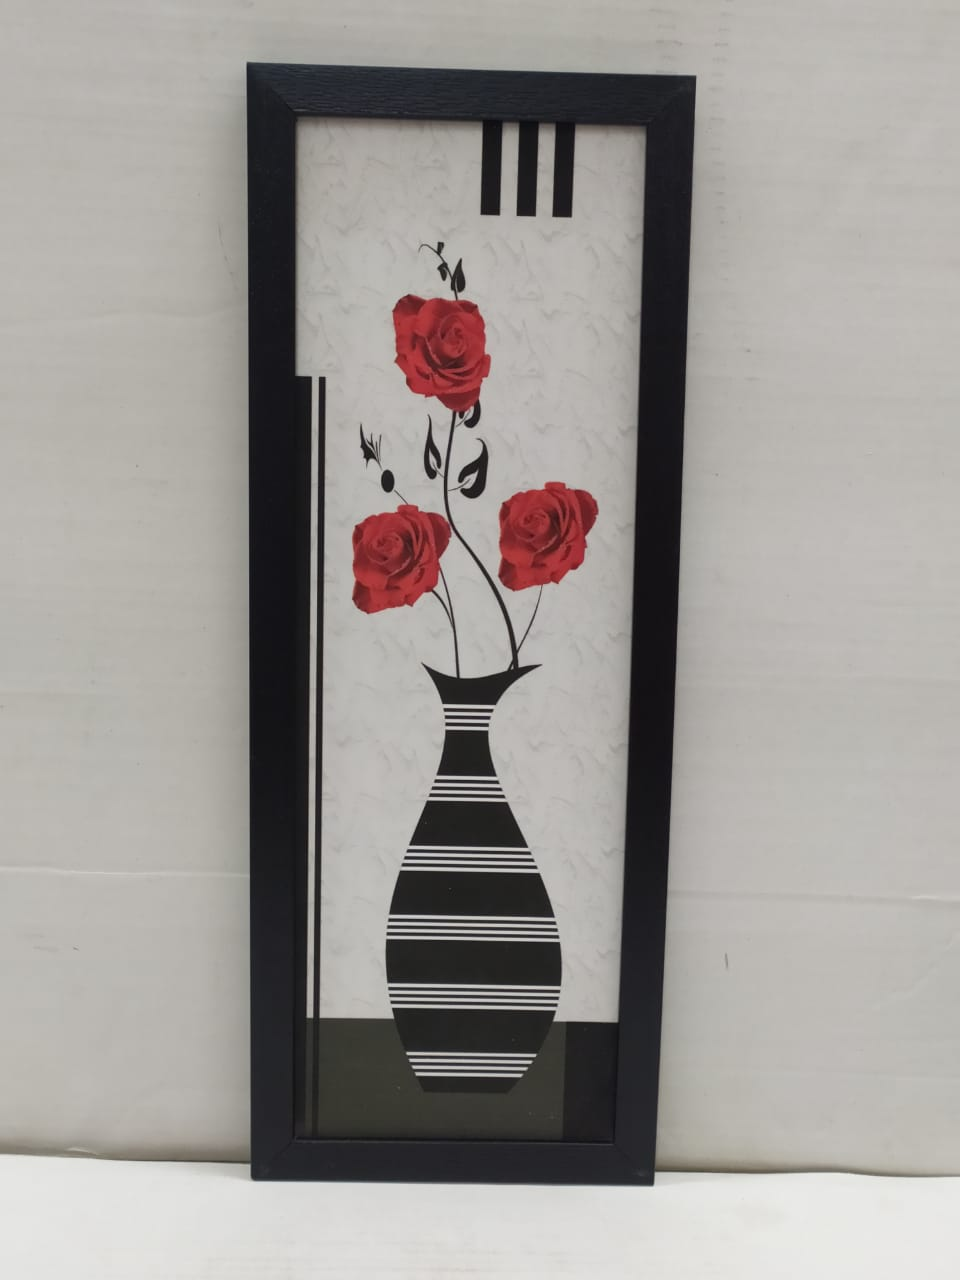 Flower Vase Scenery Picture Wall Frame Without Glass (NY198)